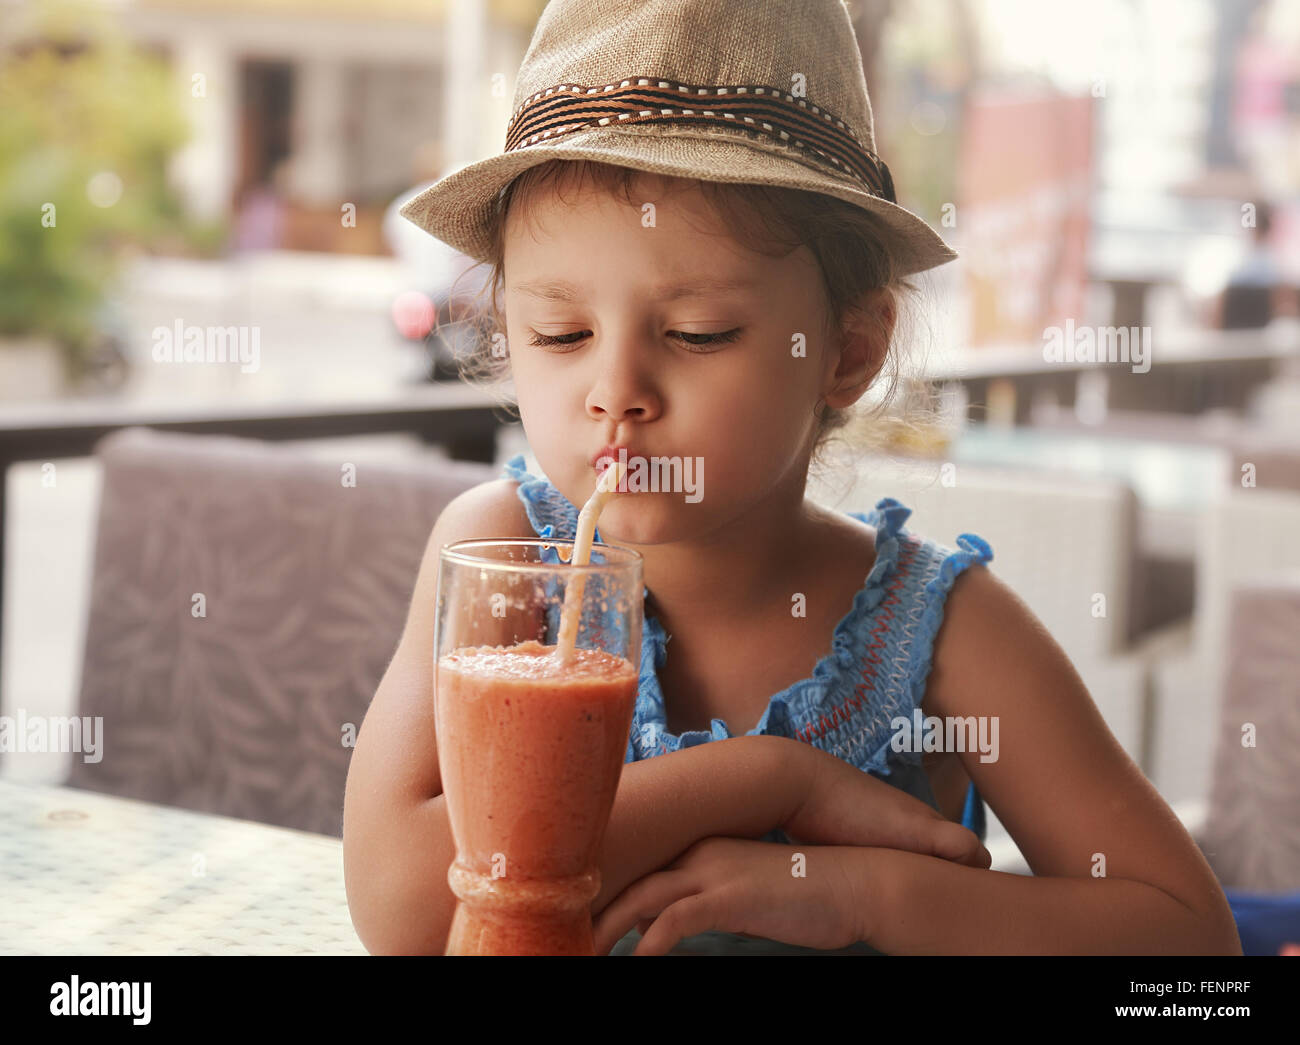 Fun kid girl in hat drinking smoothie juice from glass in street city cafe - Stock Image